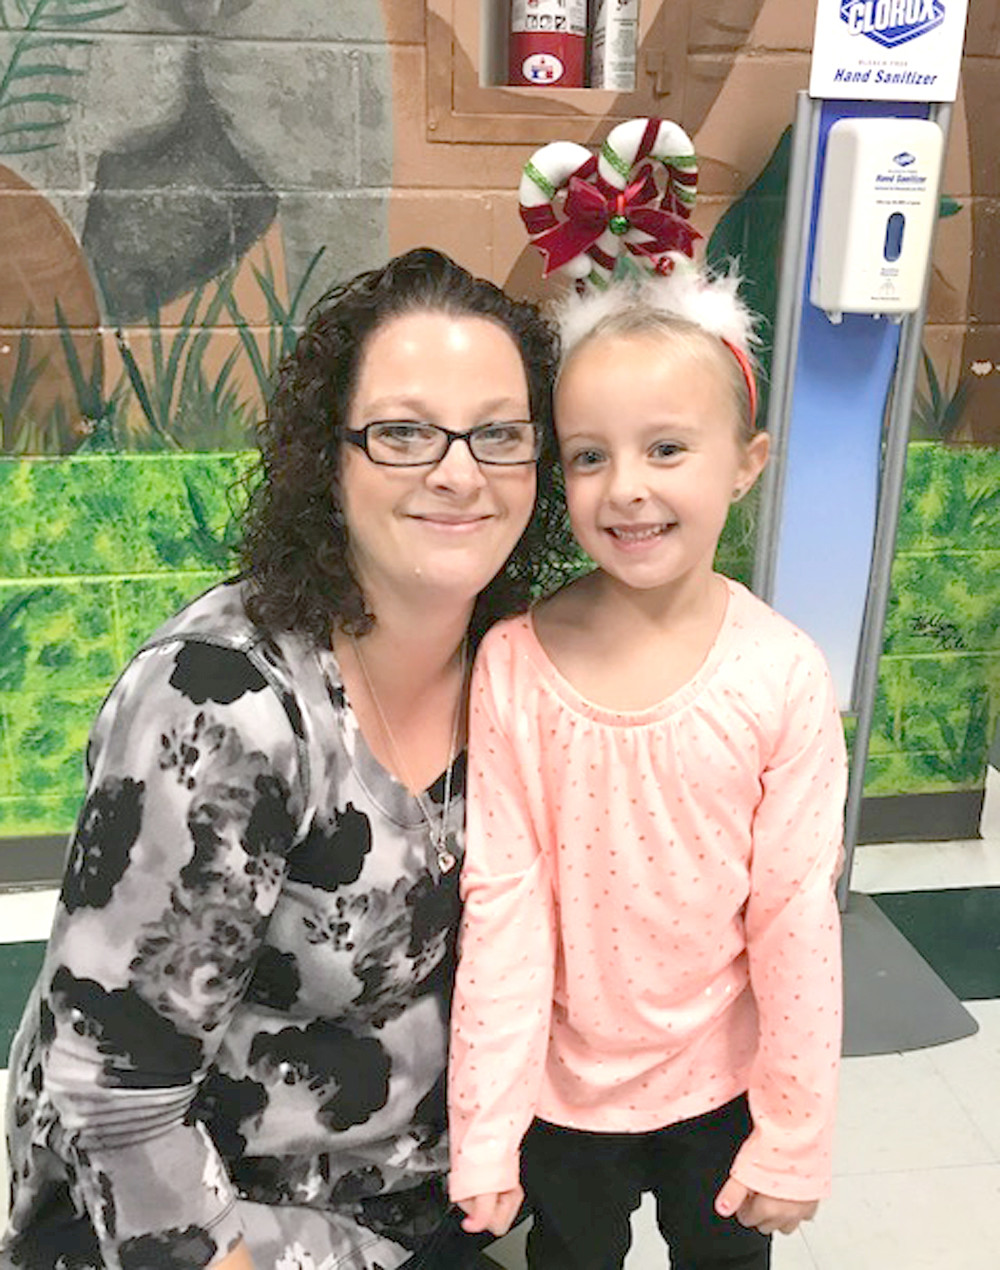 SONJA AND TAYLOR DUDASH spend some quality time together during Old Fashioned Christmas at the Grove at Oak Grove Elementary.